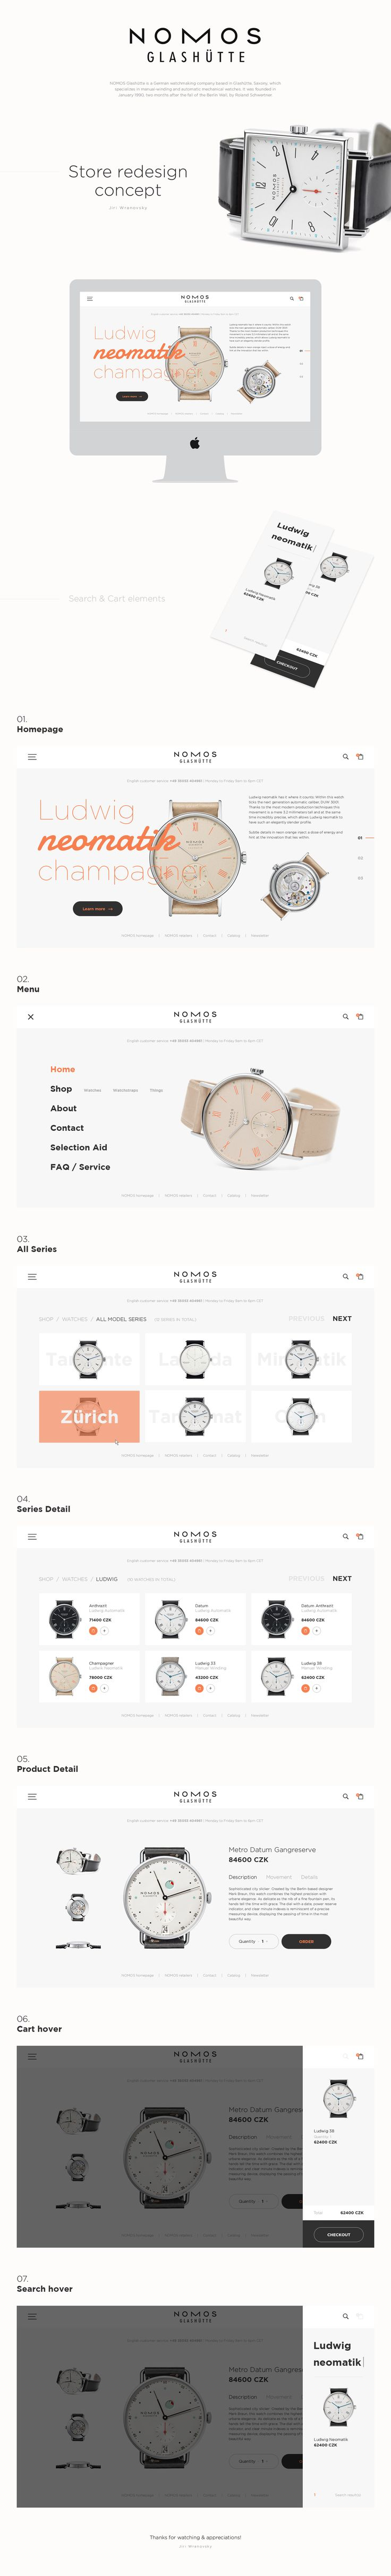 Nomos Glashütte on Behance